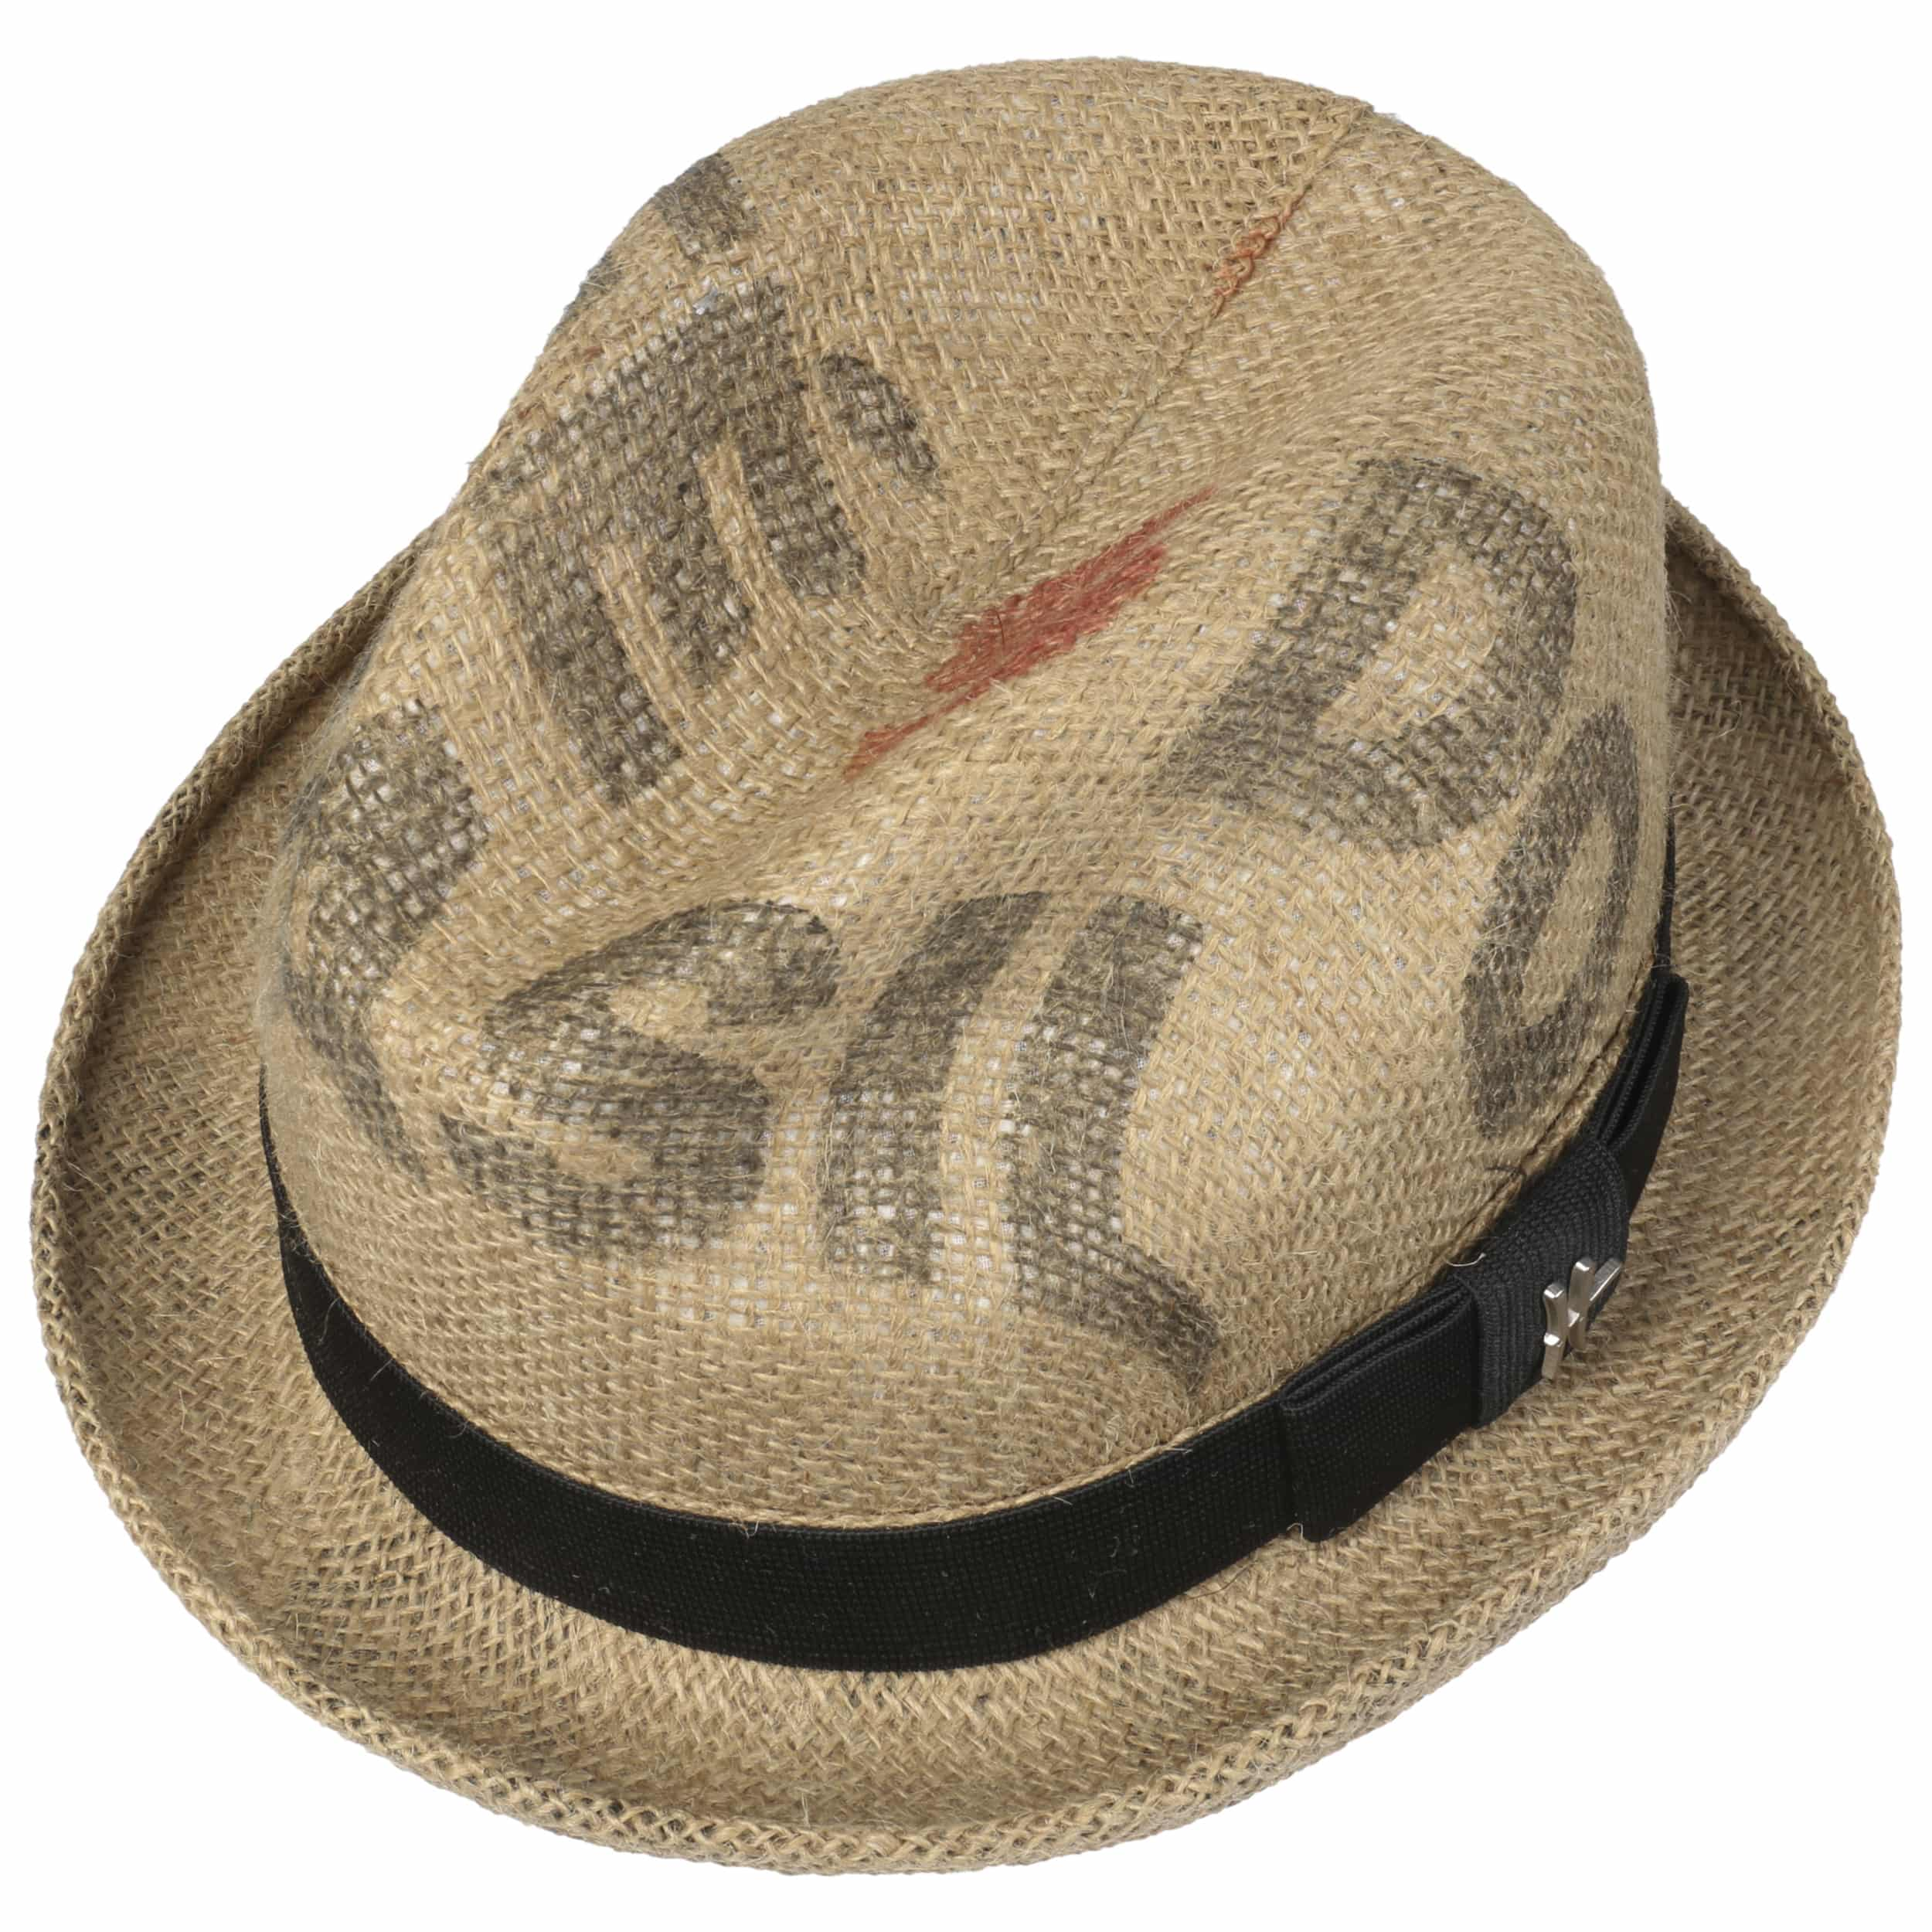 Sombrero Café au Lait Player by ReHats - natural 1 ... 33754f8aed2